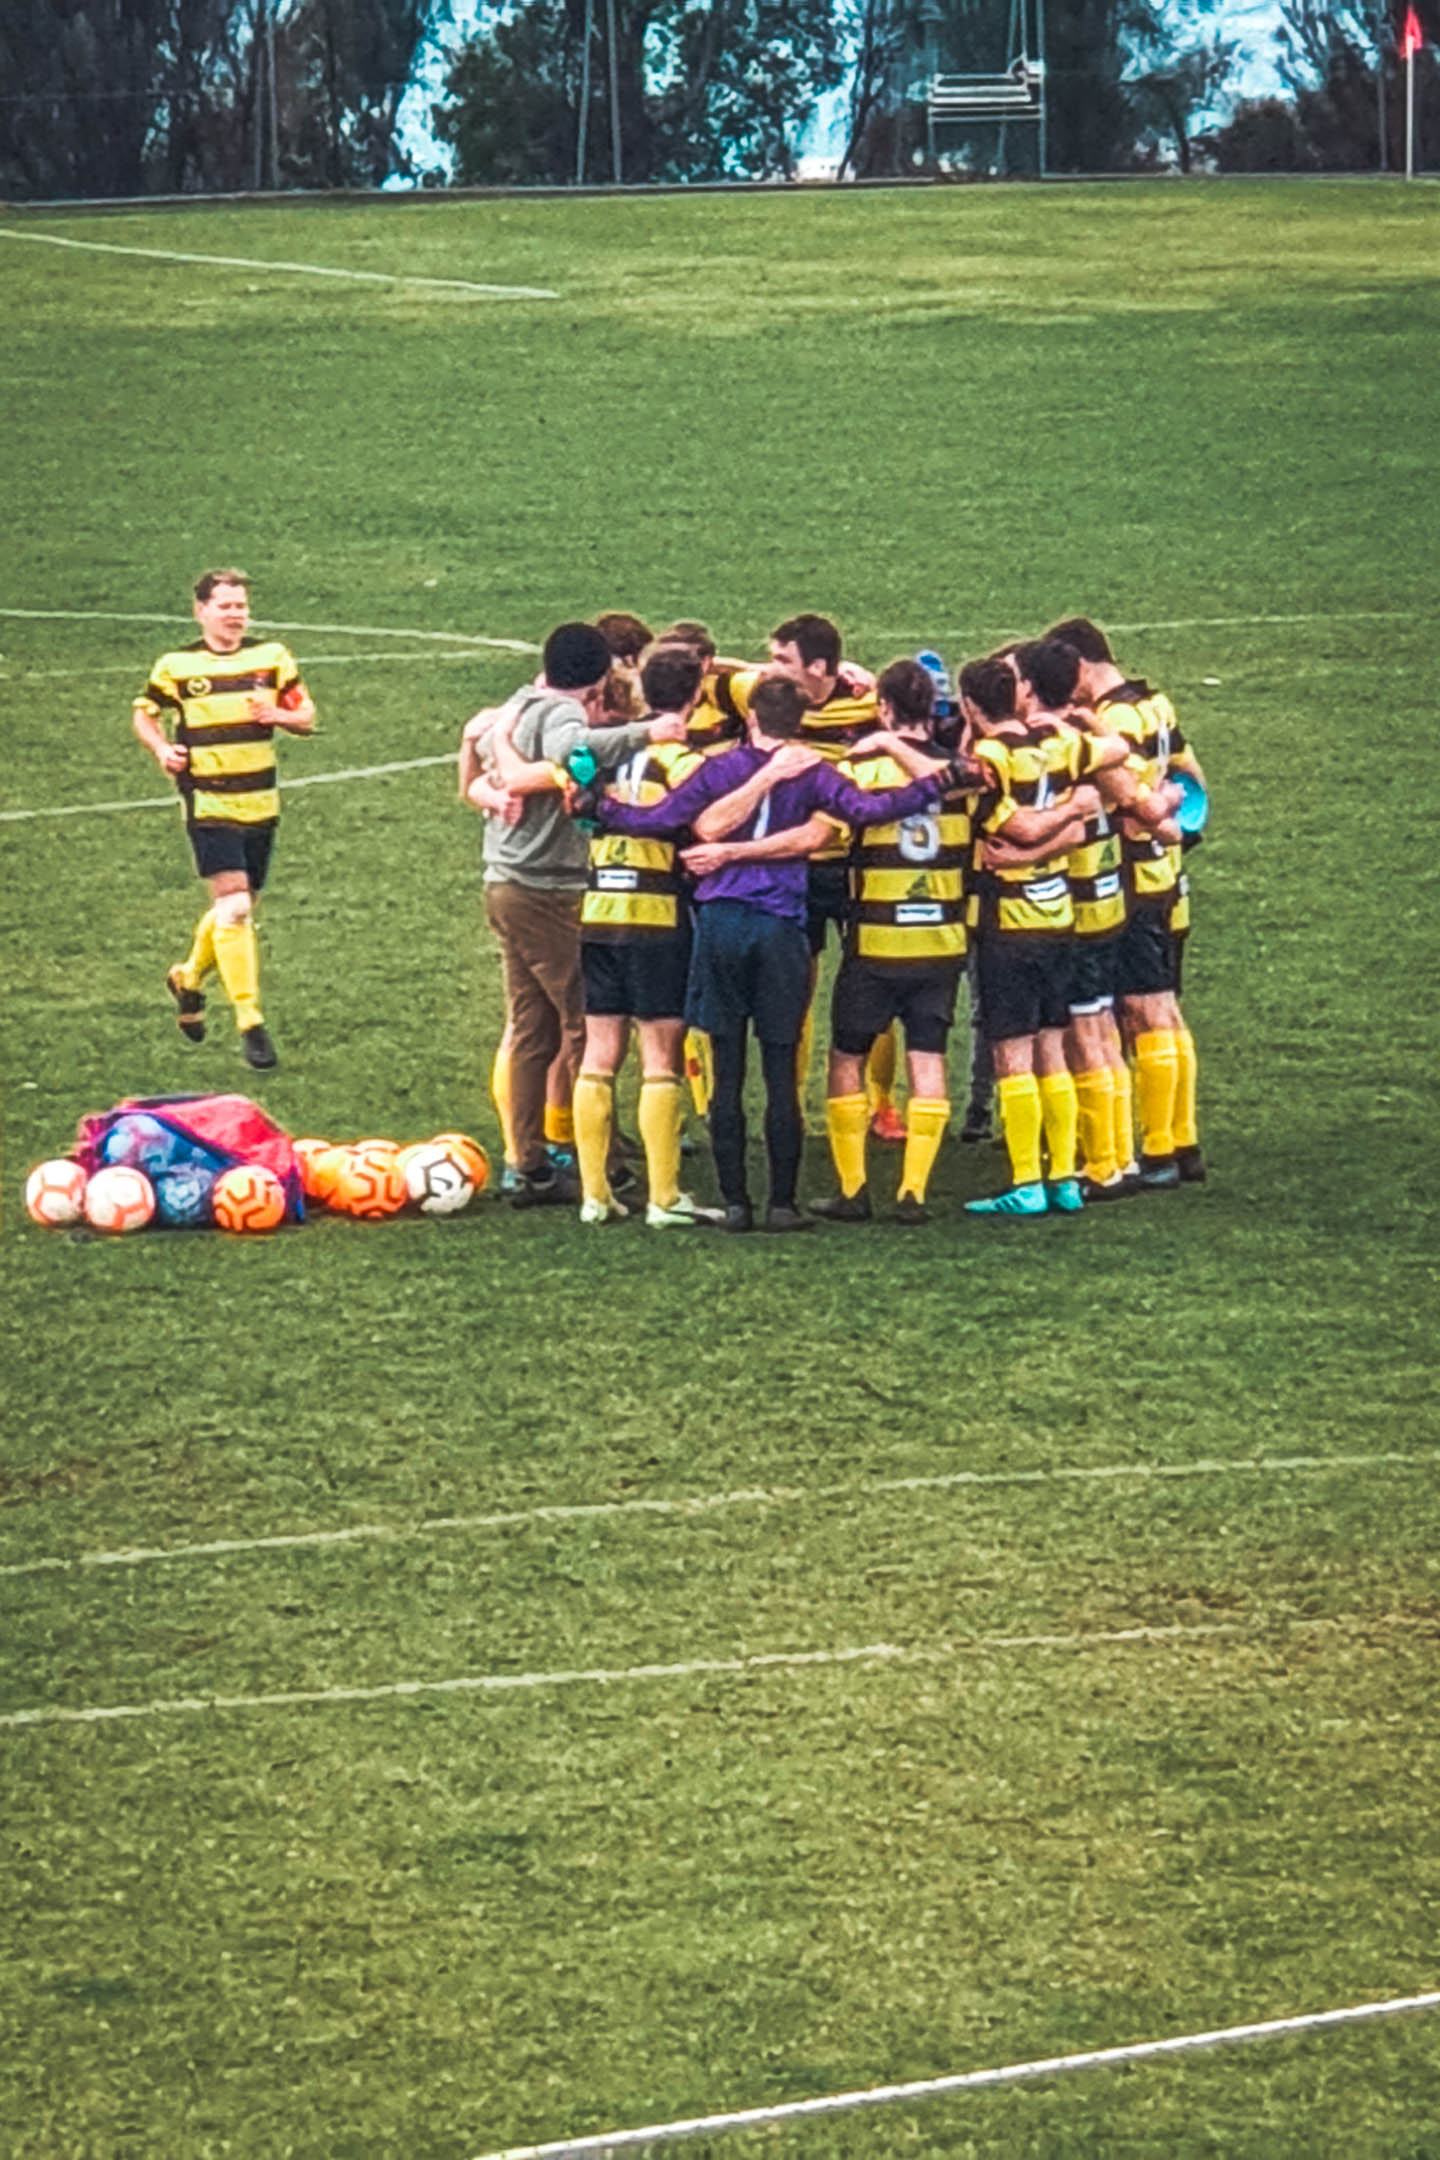 Pre-game huddle of men's team